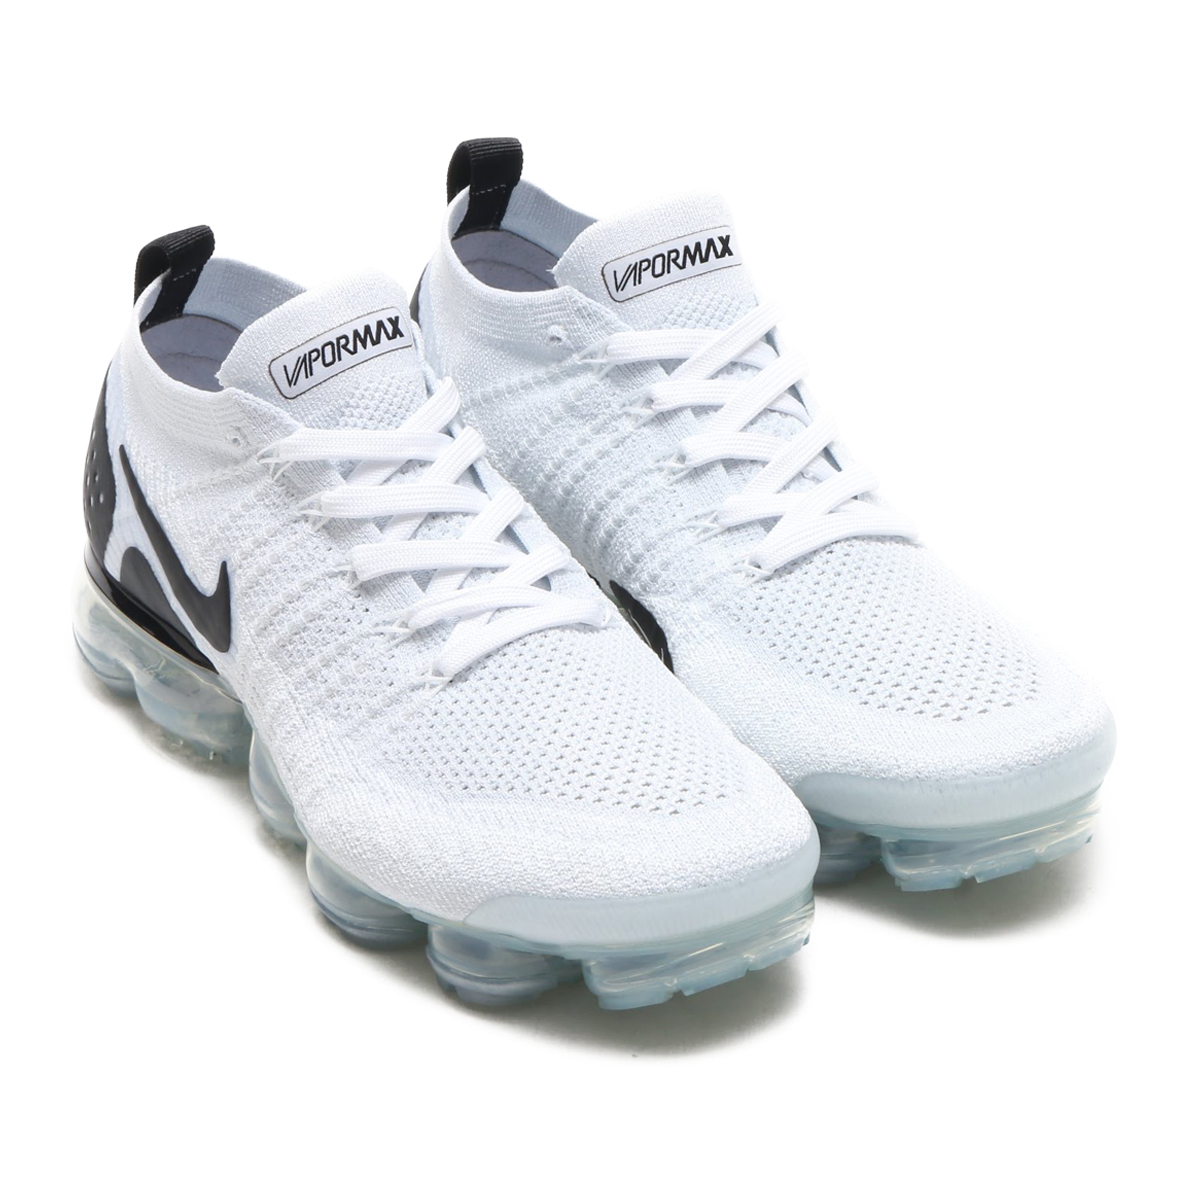 6c01e02fa27e NIKE AIR VAPORMAX FLYKNIT 2 (Nike air vapor max fried food knit 2)  (WHITE BLACK-BLACK) 18SU-S